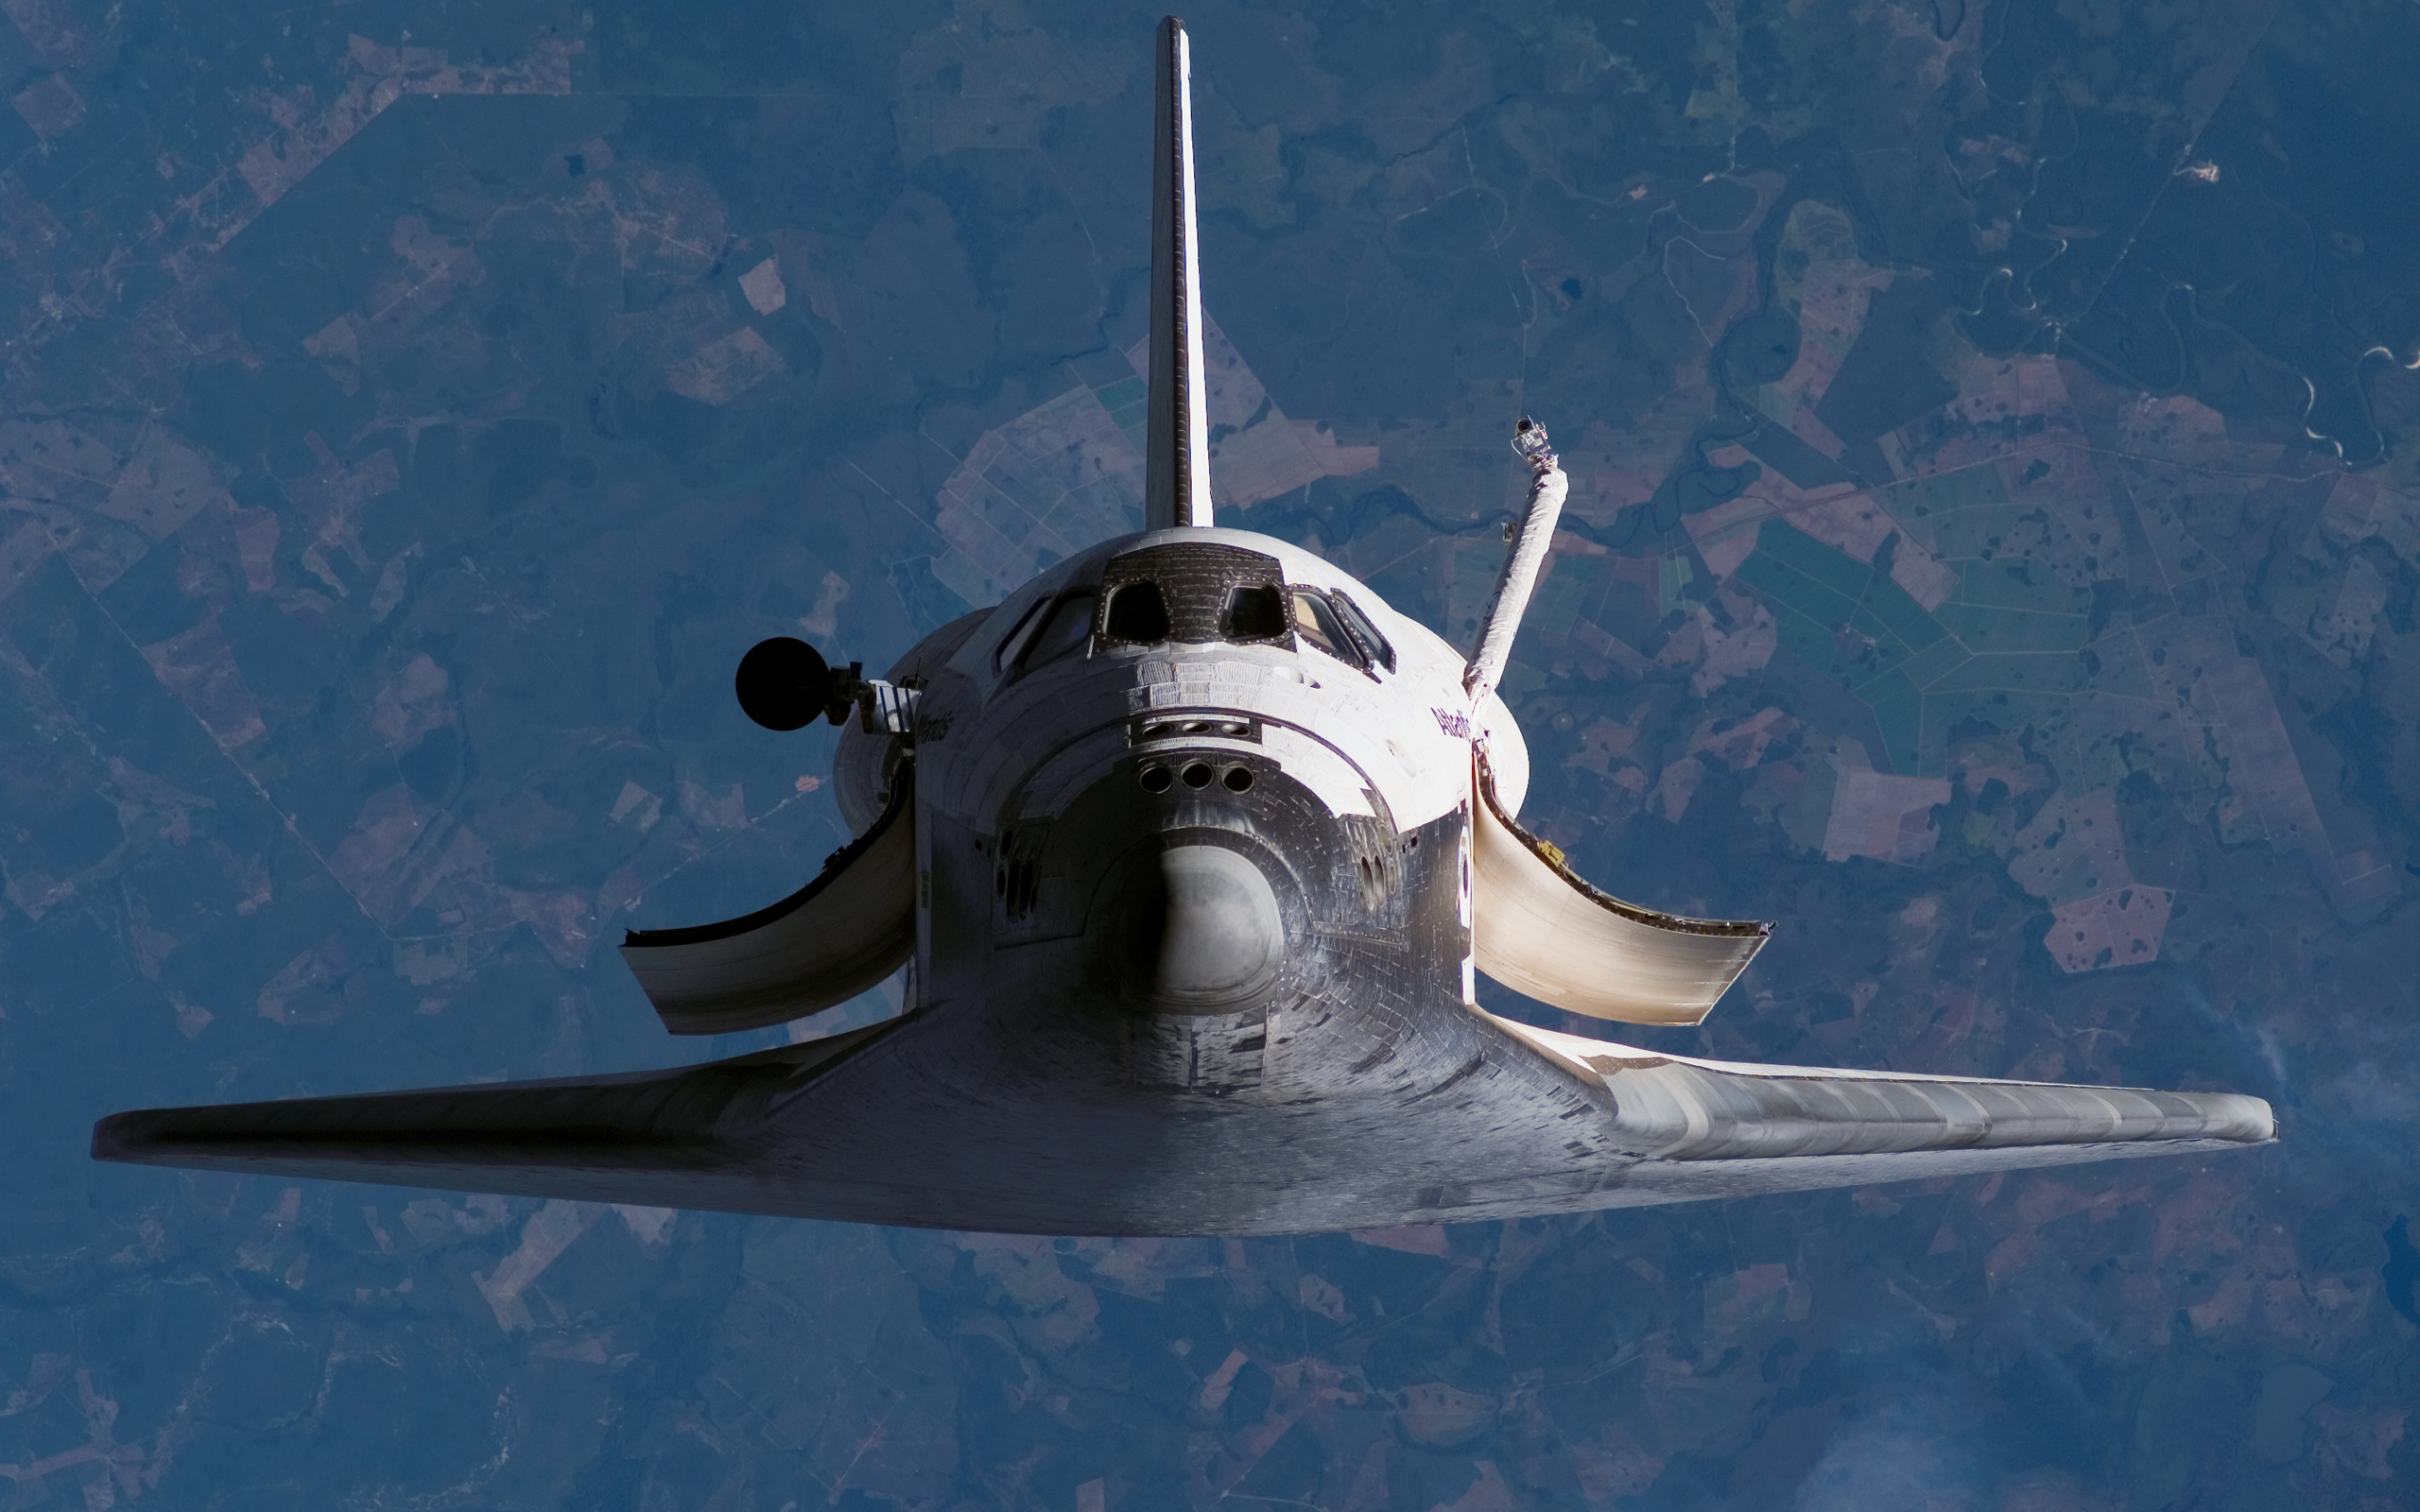 Space Shuttle Wallpaper Desktop page 3   Pics about space 2560x1600